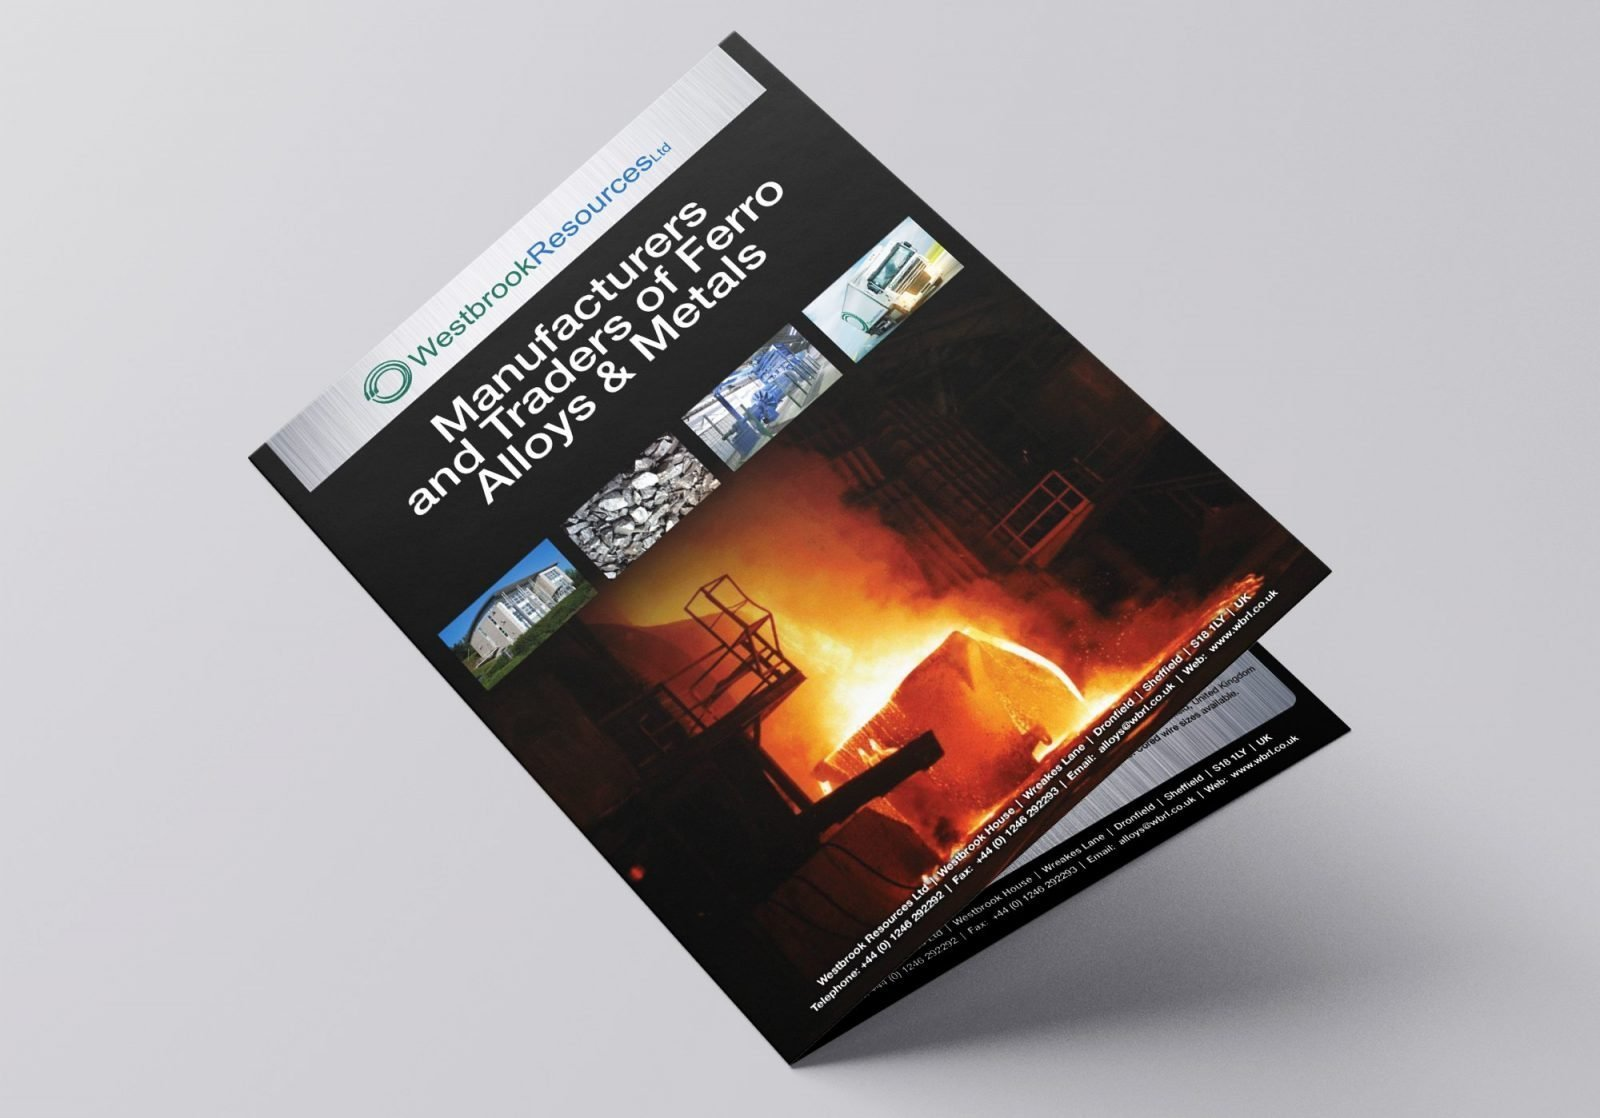 A4 Brochure for Westbrook Resources showing front cover